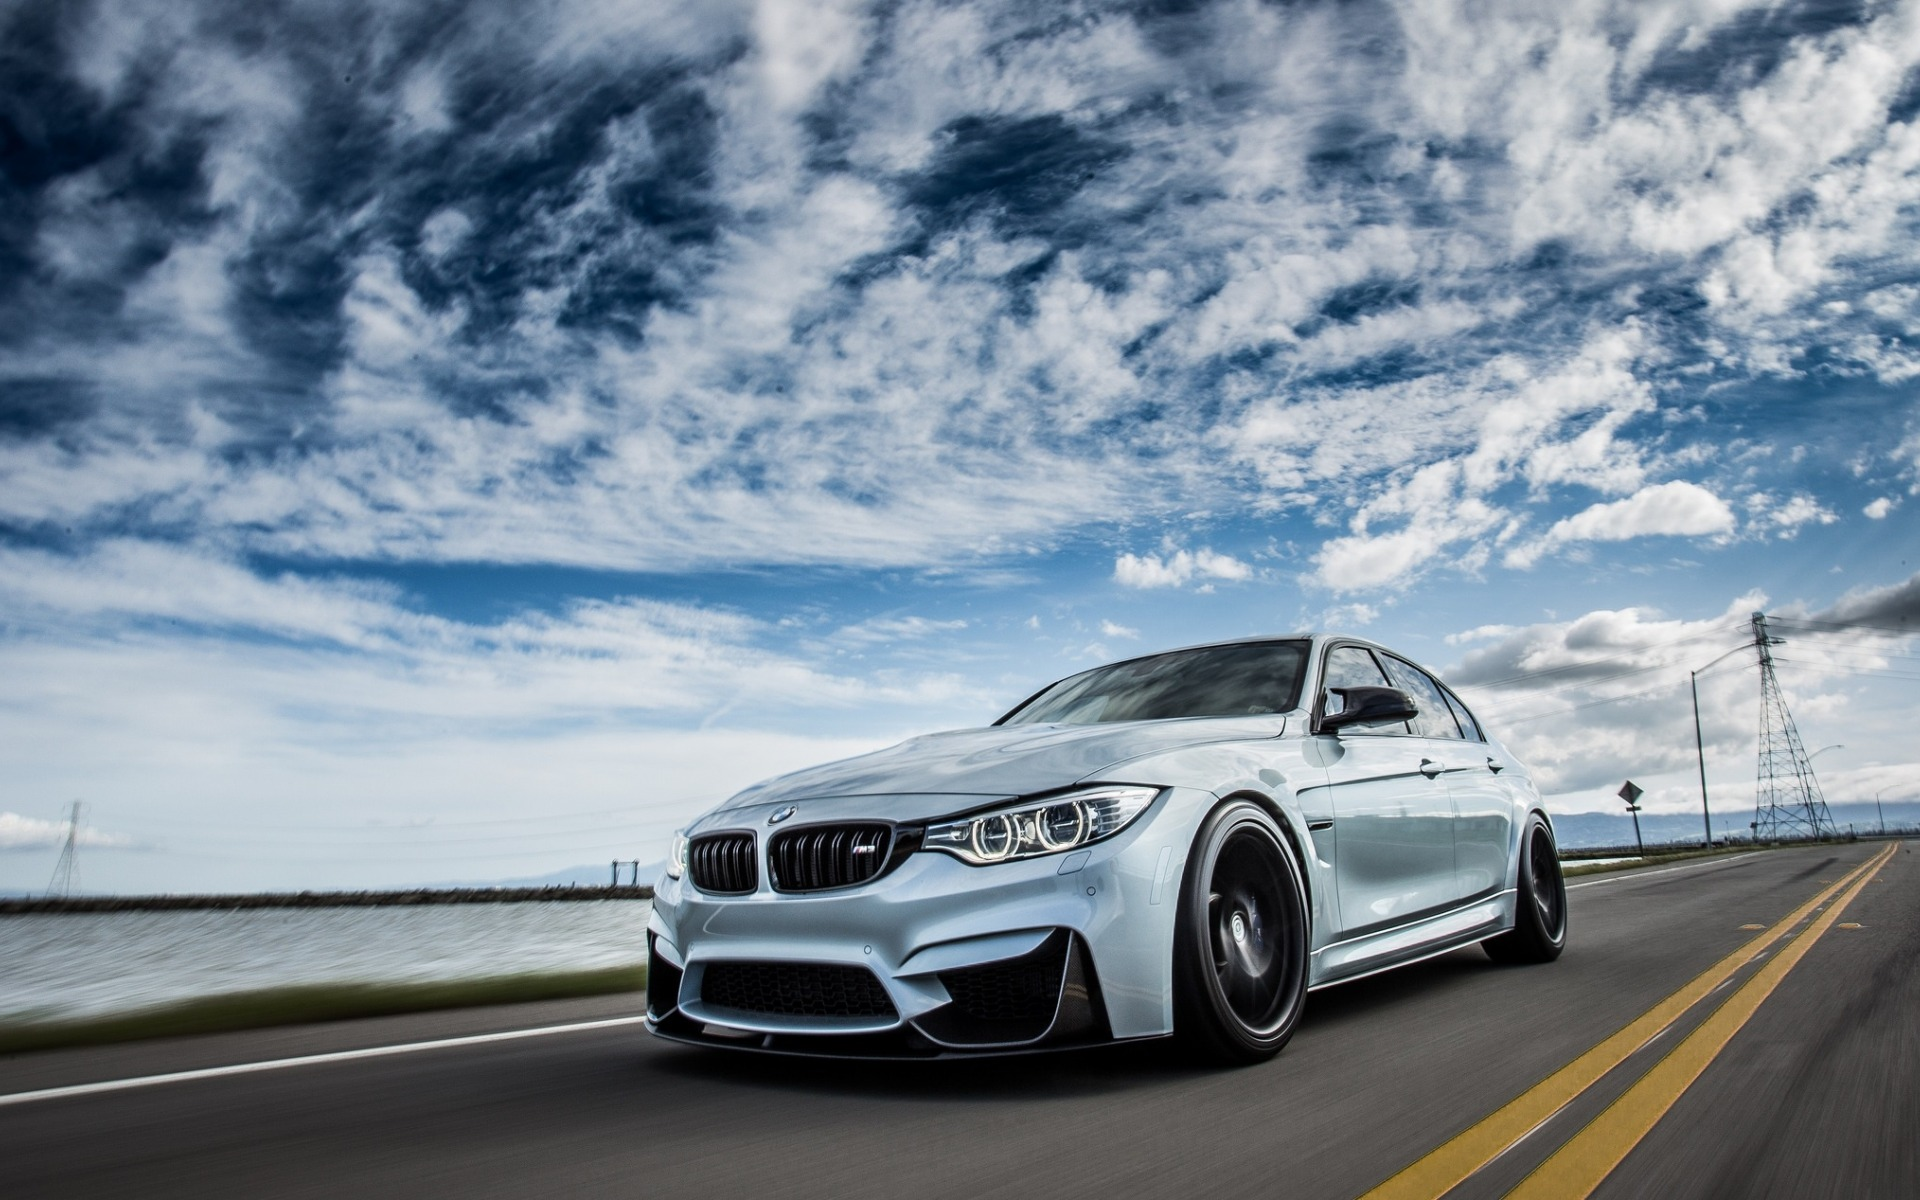 Bmw M3 2018 F80 Exterior Road Speed Front View Bmw M3 2018 On The Road 1920x1200 Wallpaper Teahub Io